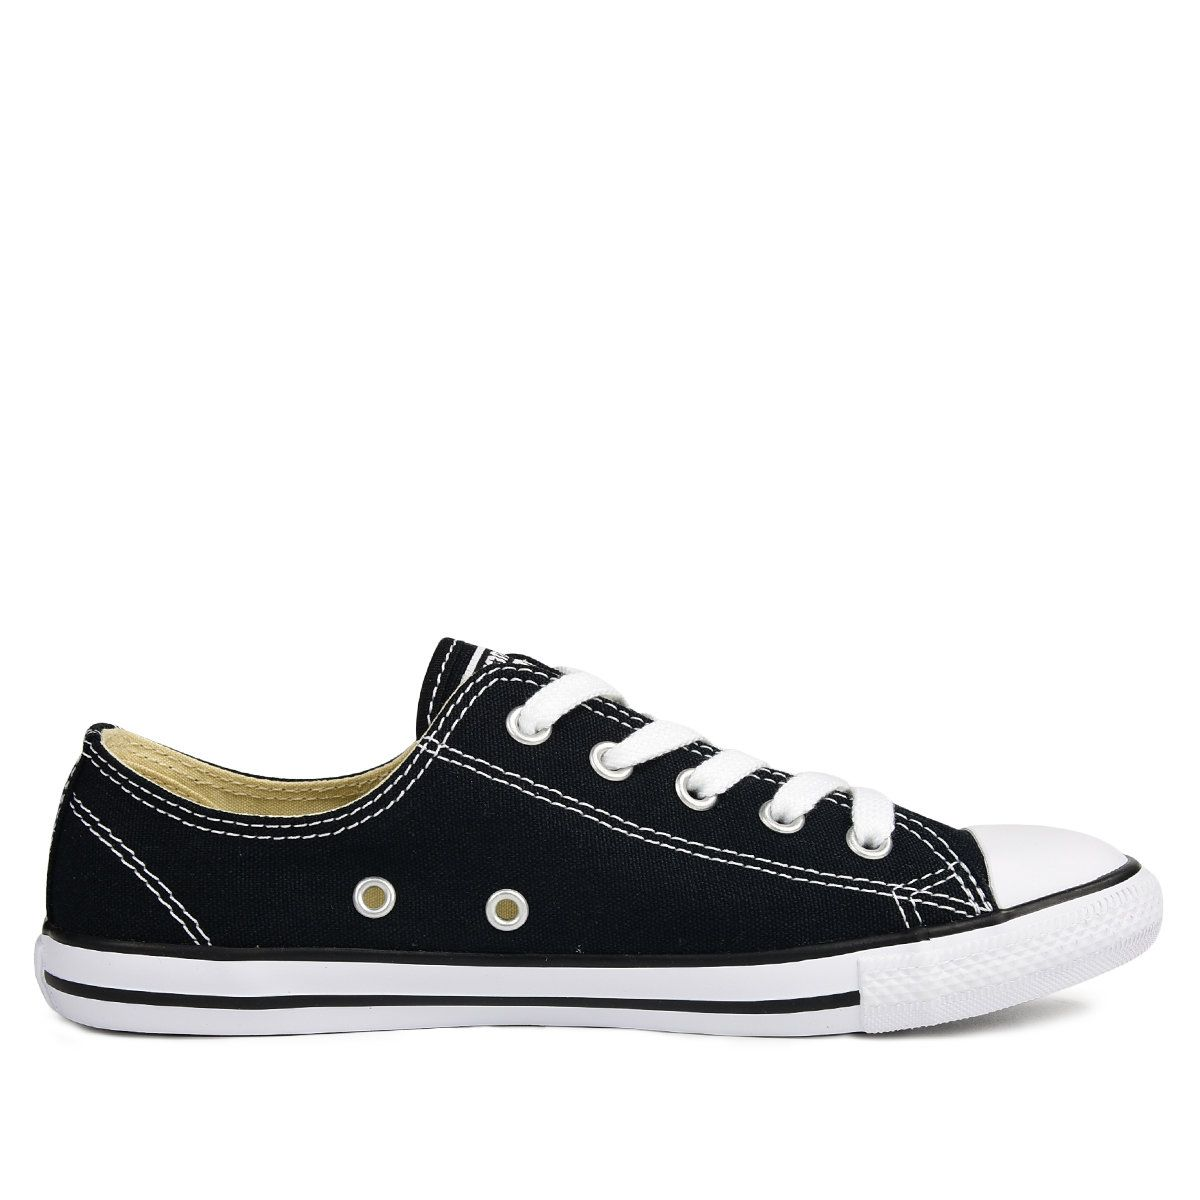 e45a6151f0ee ALL STAR series of classic thin bottom fashion style low cut canvas shoes  CS530054  converse  shoes